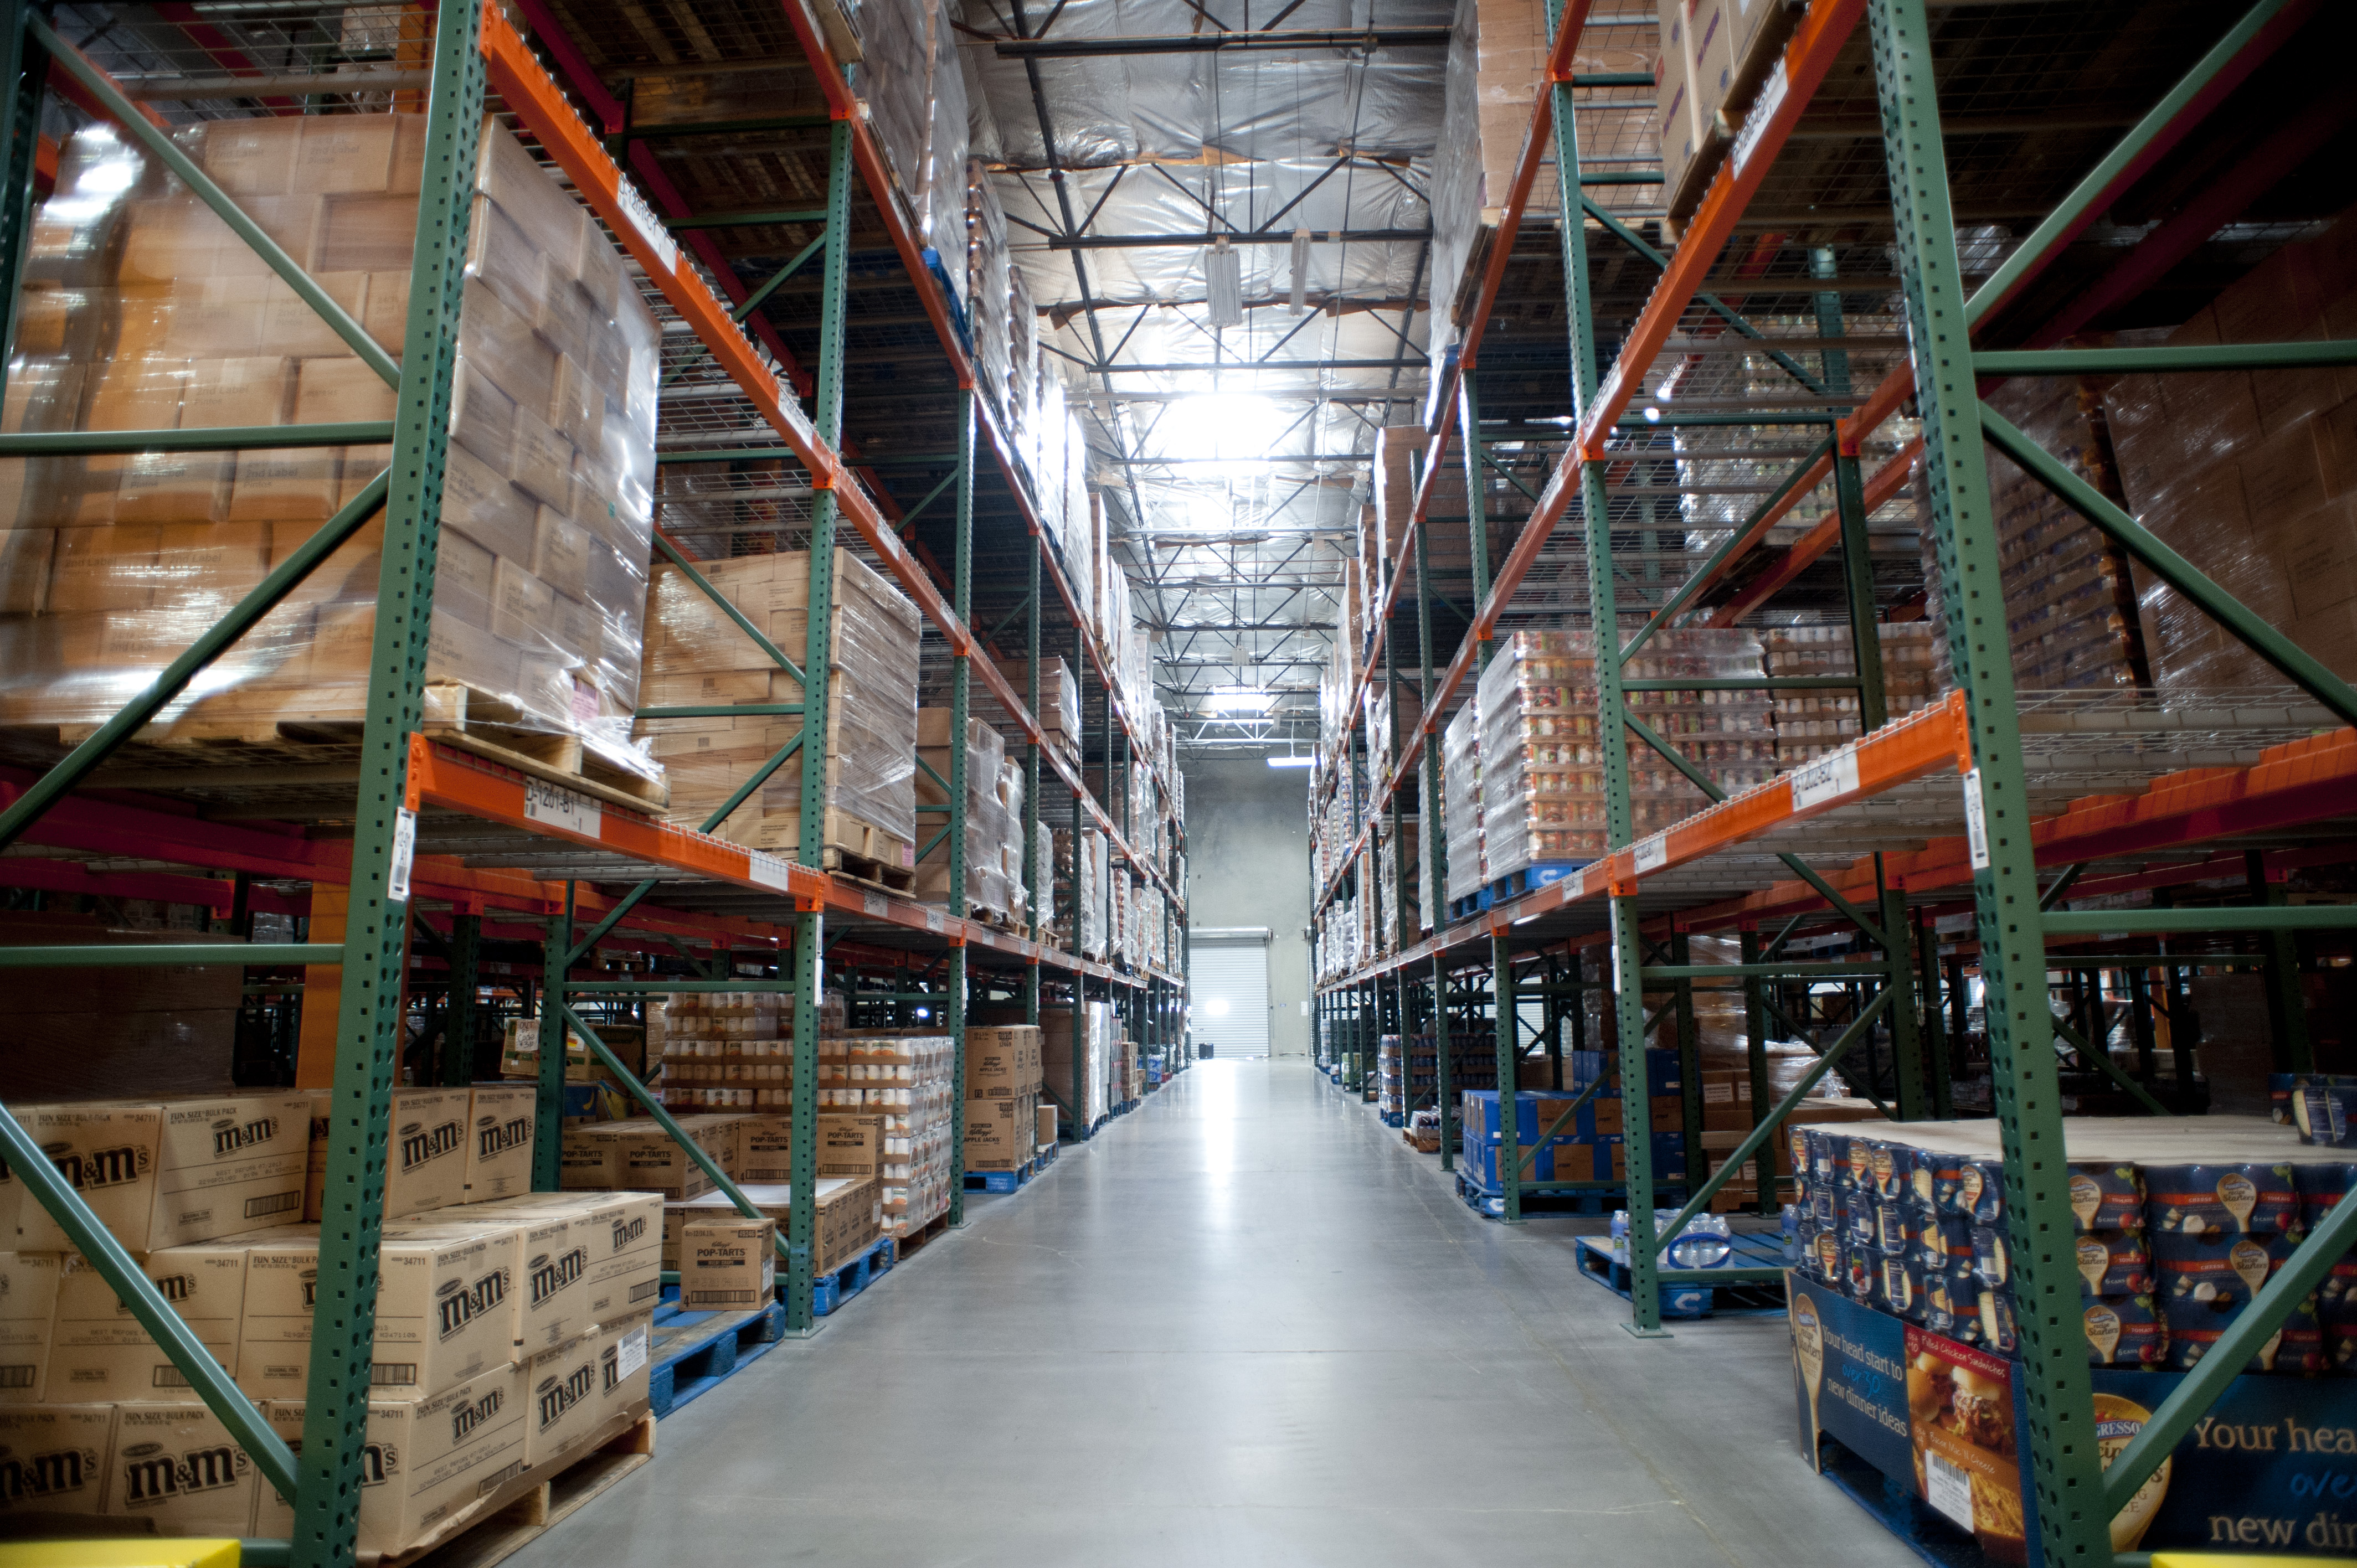 A warehouse aisle filled with boxes of food